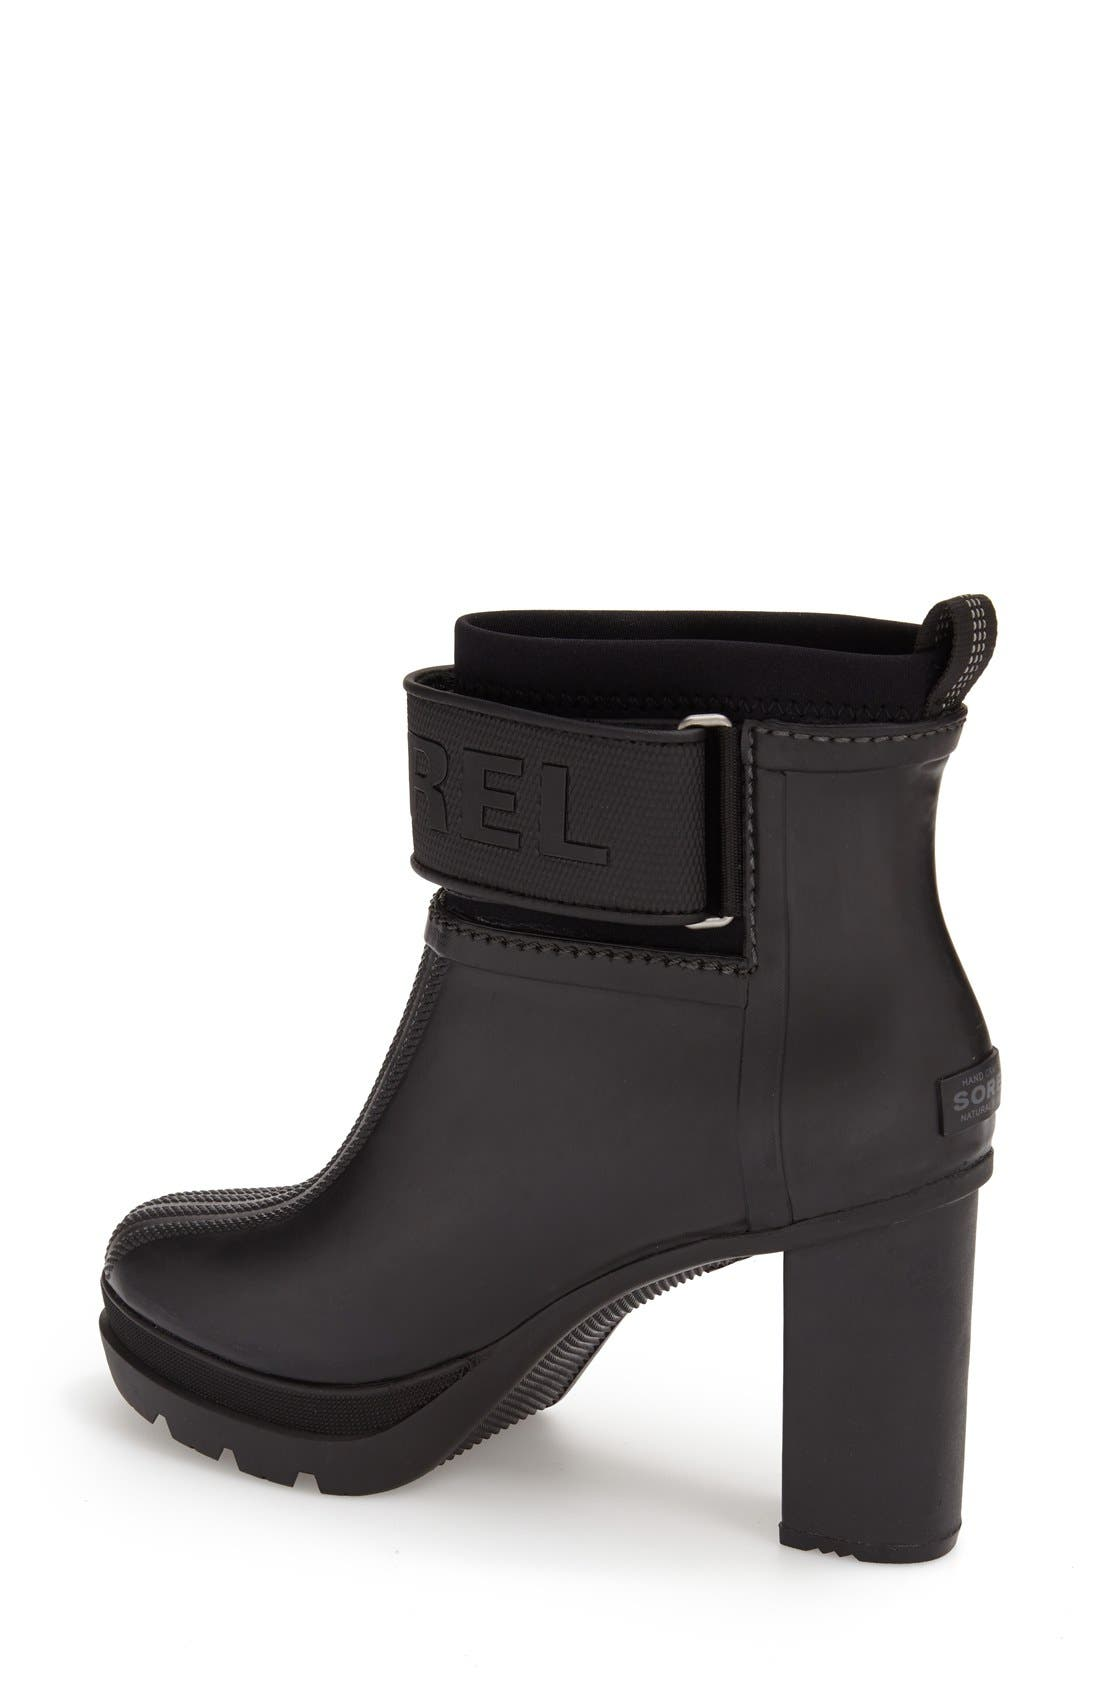 'Medina III' Waterproof Bootie,                             Alternate thumbnail 4, color,                             010